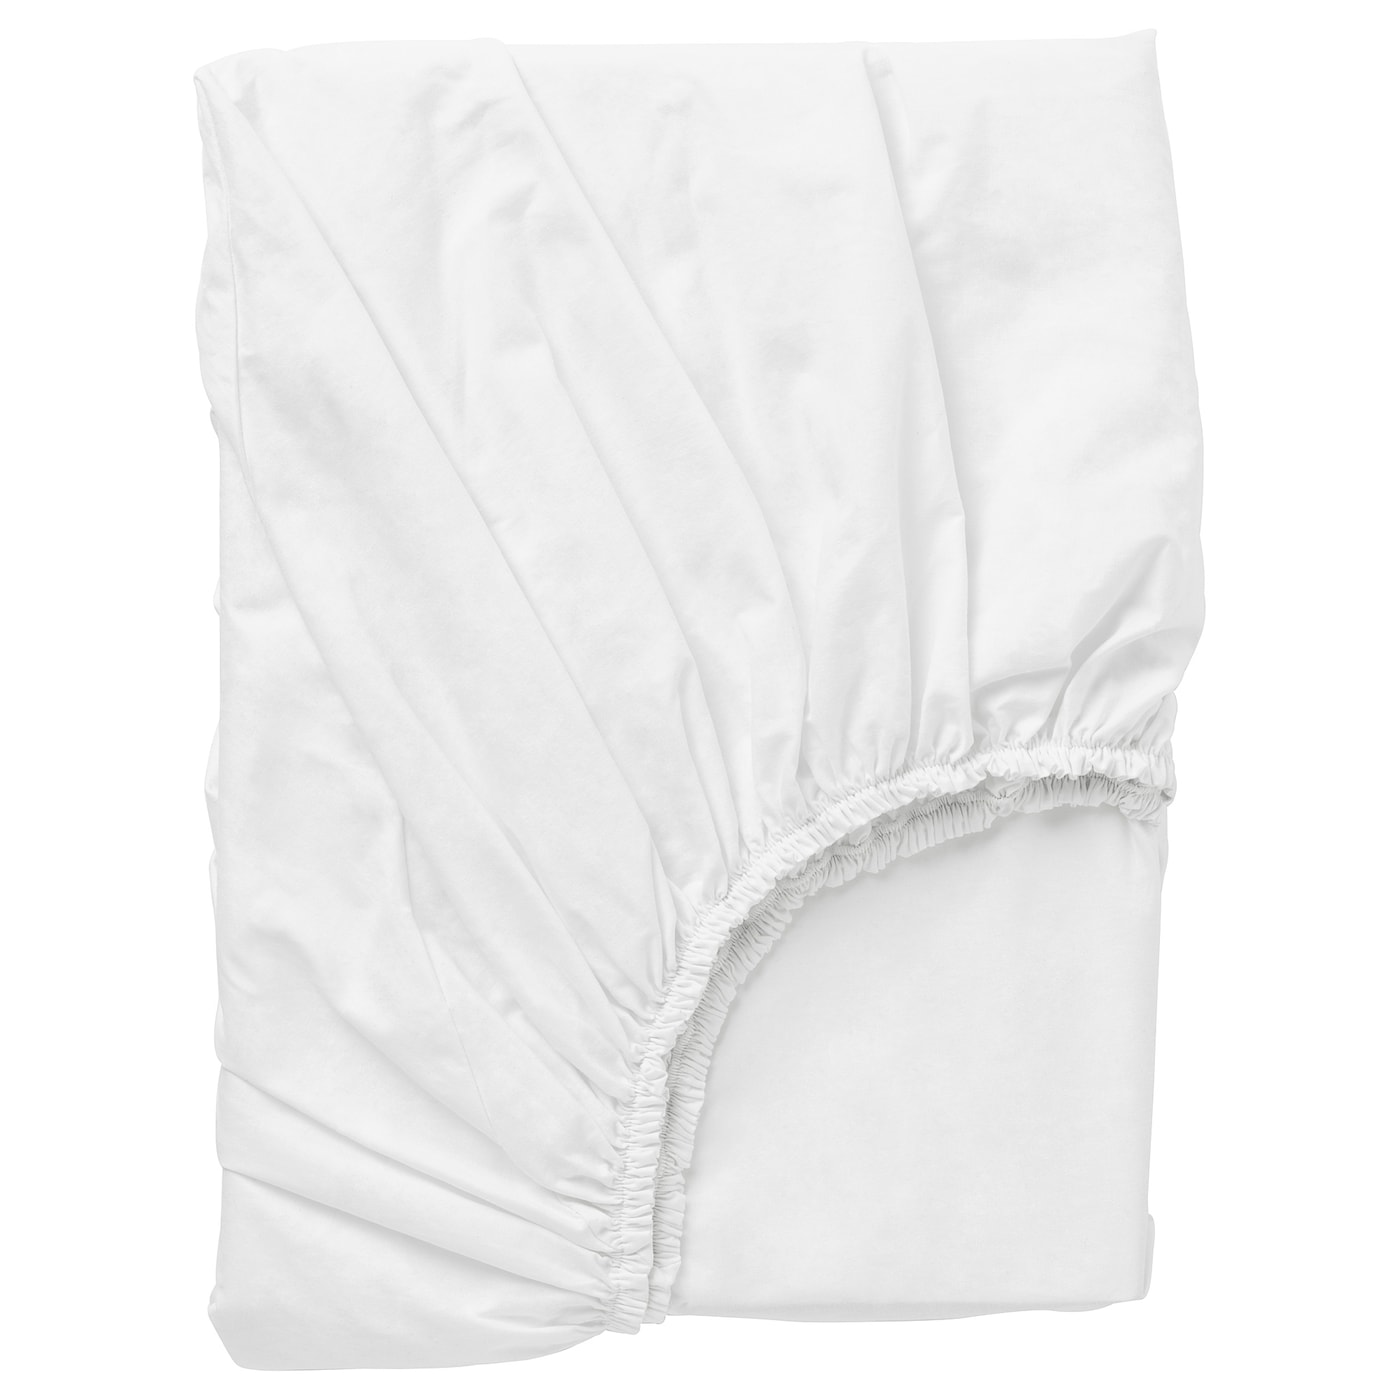 IKEA DVALA fitted sheet Pure cotton that feels soft and nice against your skin.